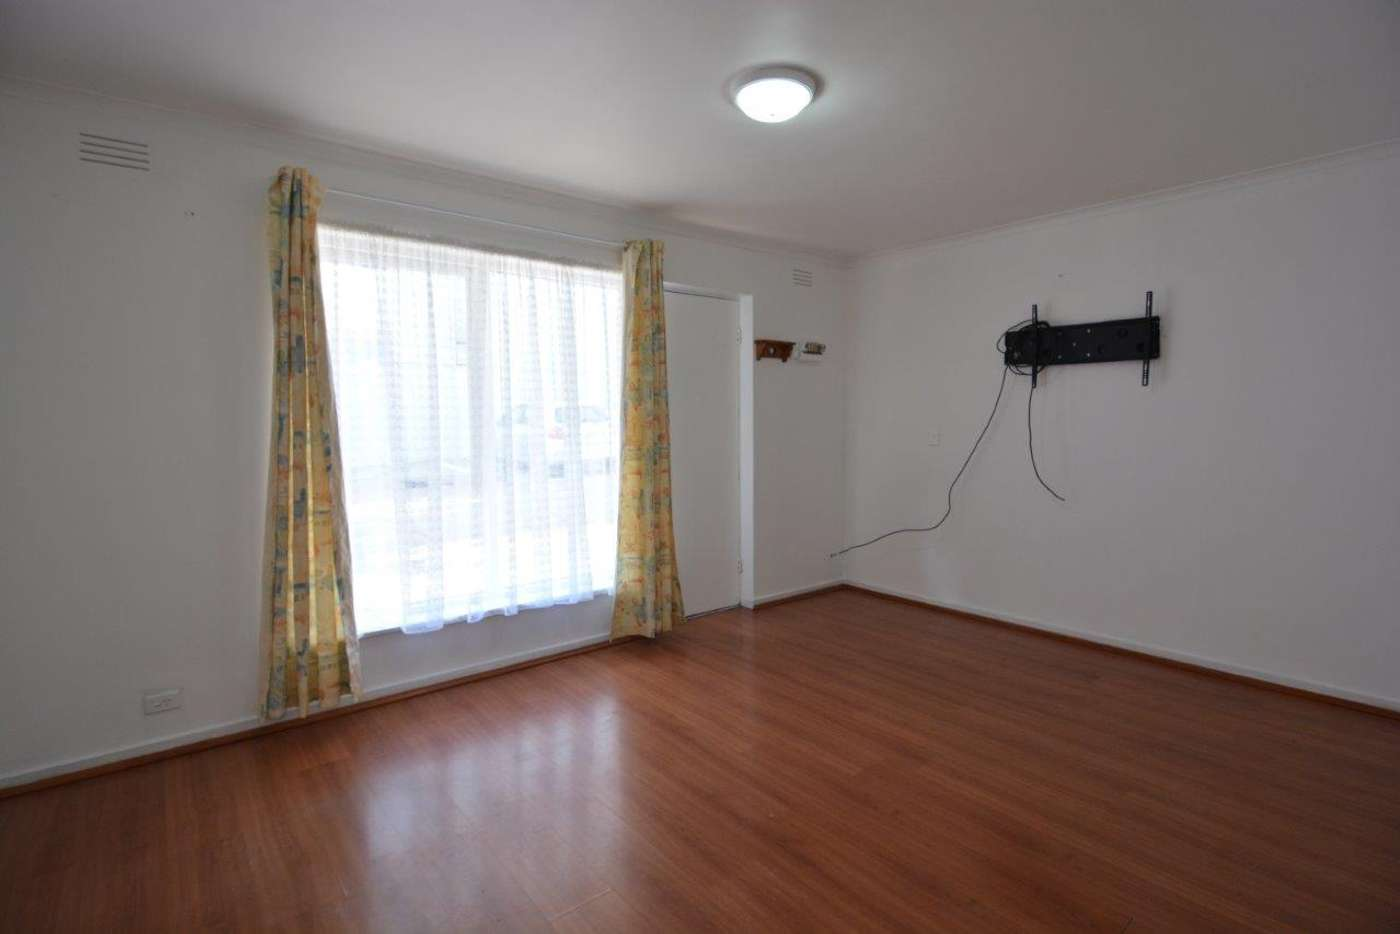 Main view of Homely apartment listing, 5/436 Geelong Road, West Footscray VIC 3012